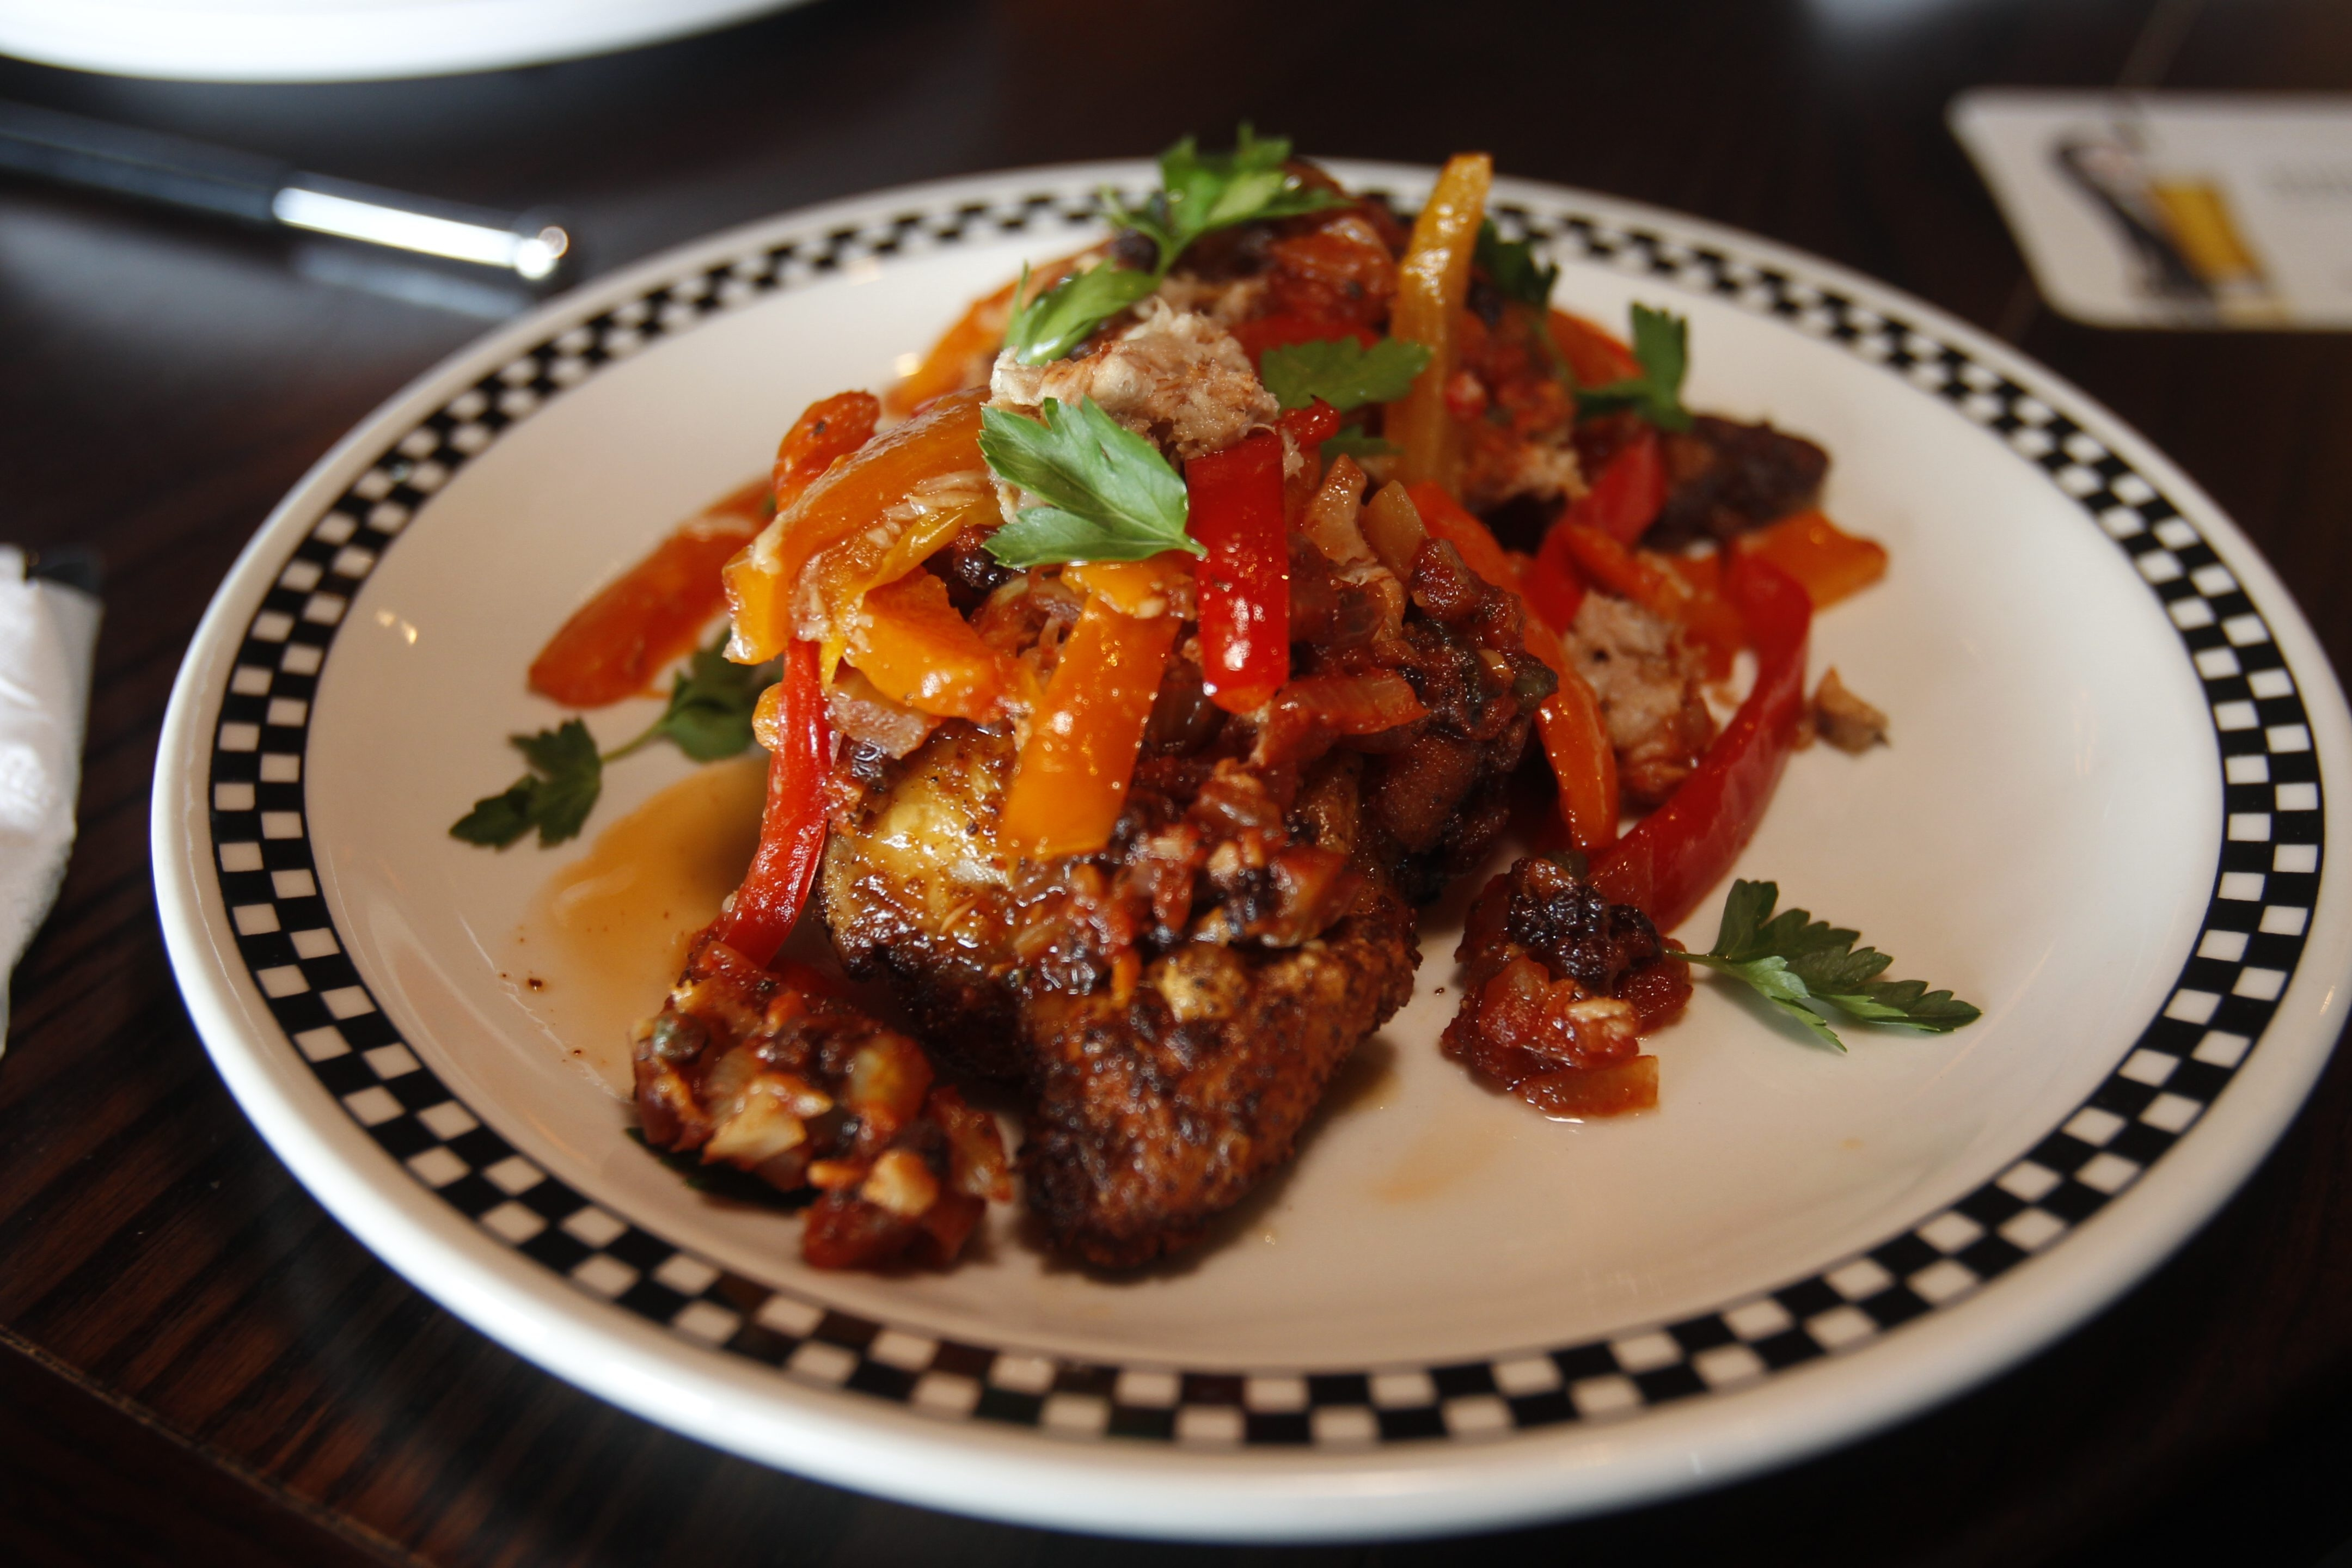 Rocco's crisps up skin-on chicken thighs in the wood oven and serves them with a sweet-and-sour Sicilian relish and a scattering of vinegar peppers at  Rocco's in Clarence, N.Y. (John Hickey / Buffalo News)